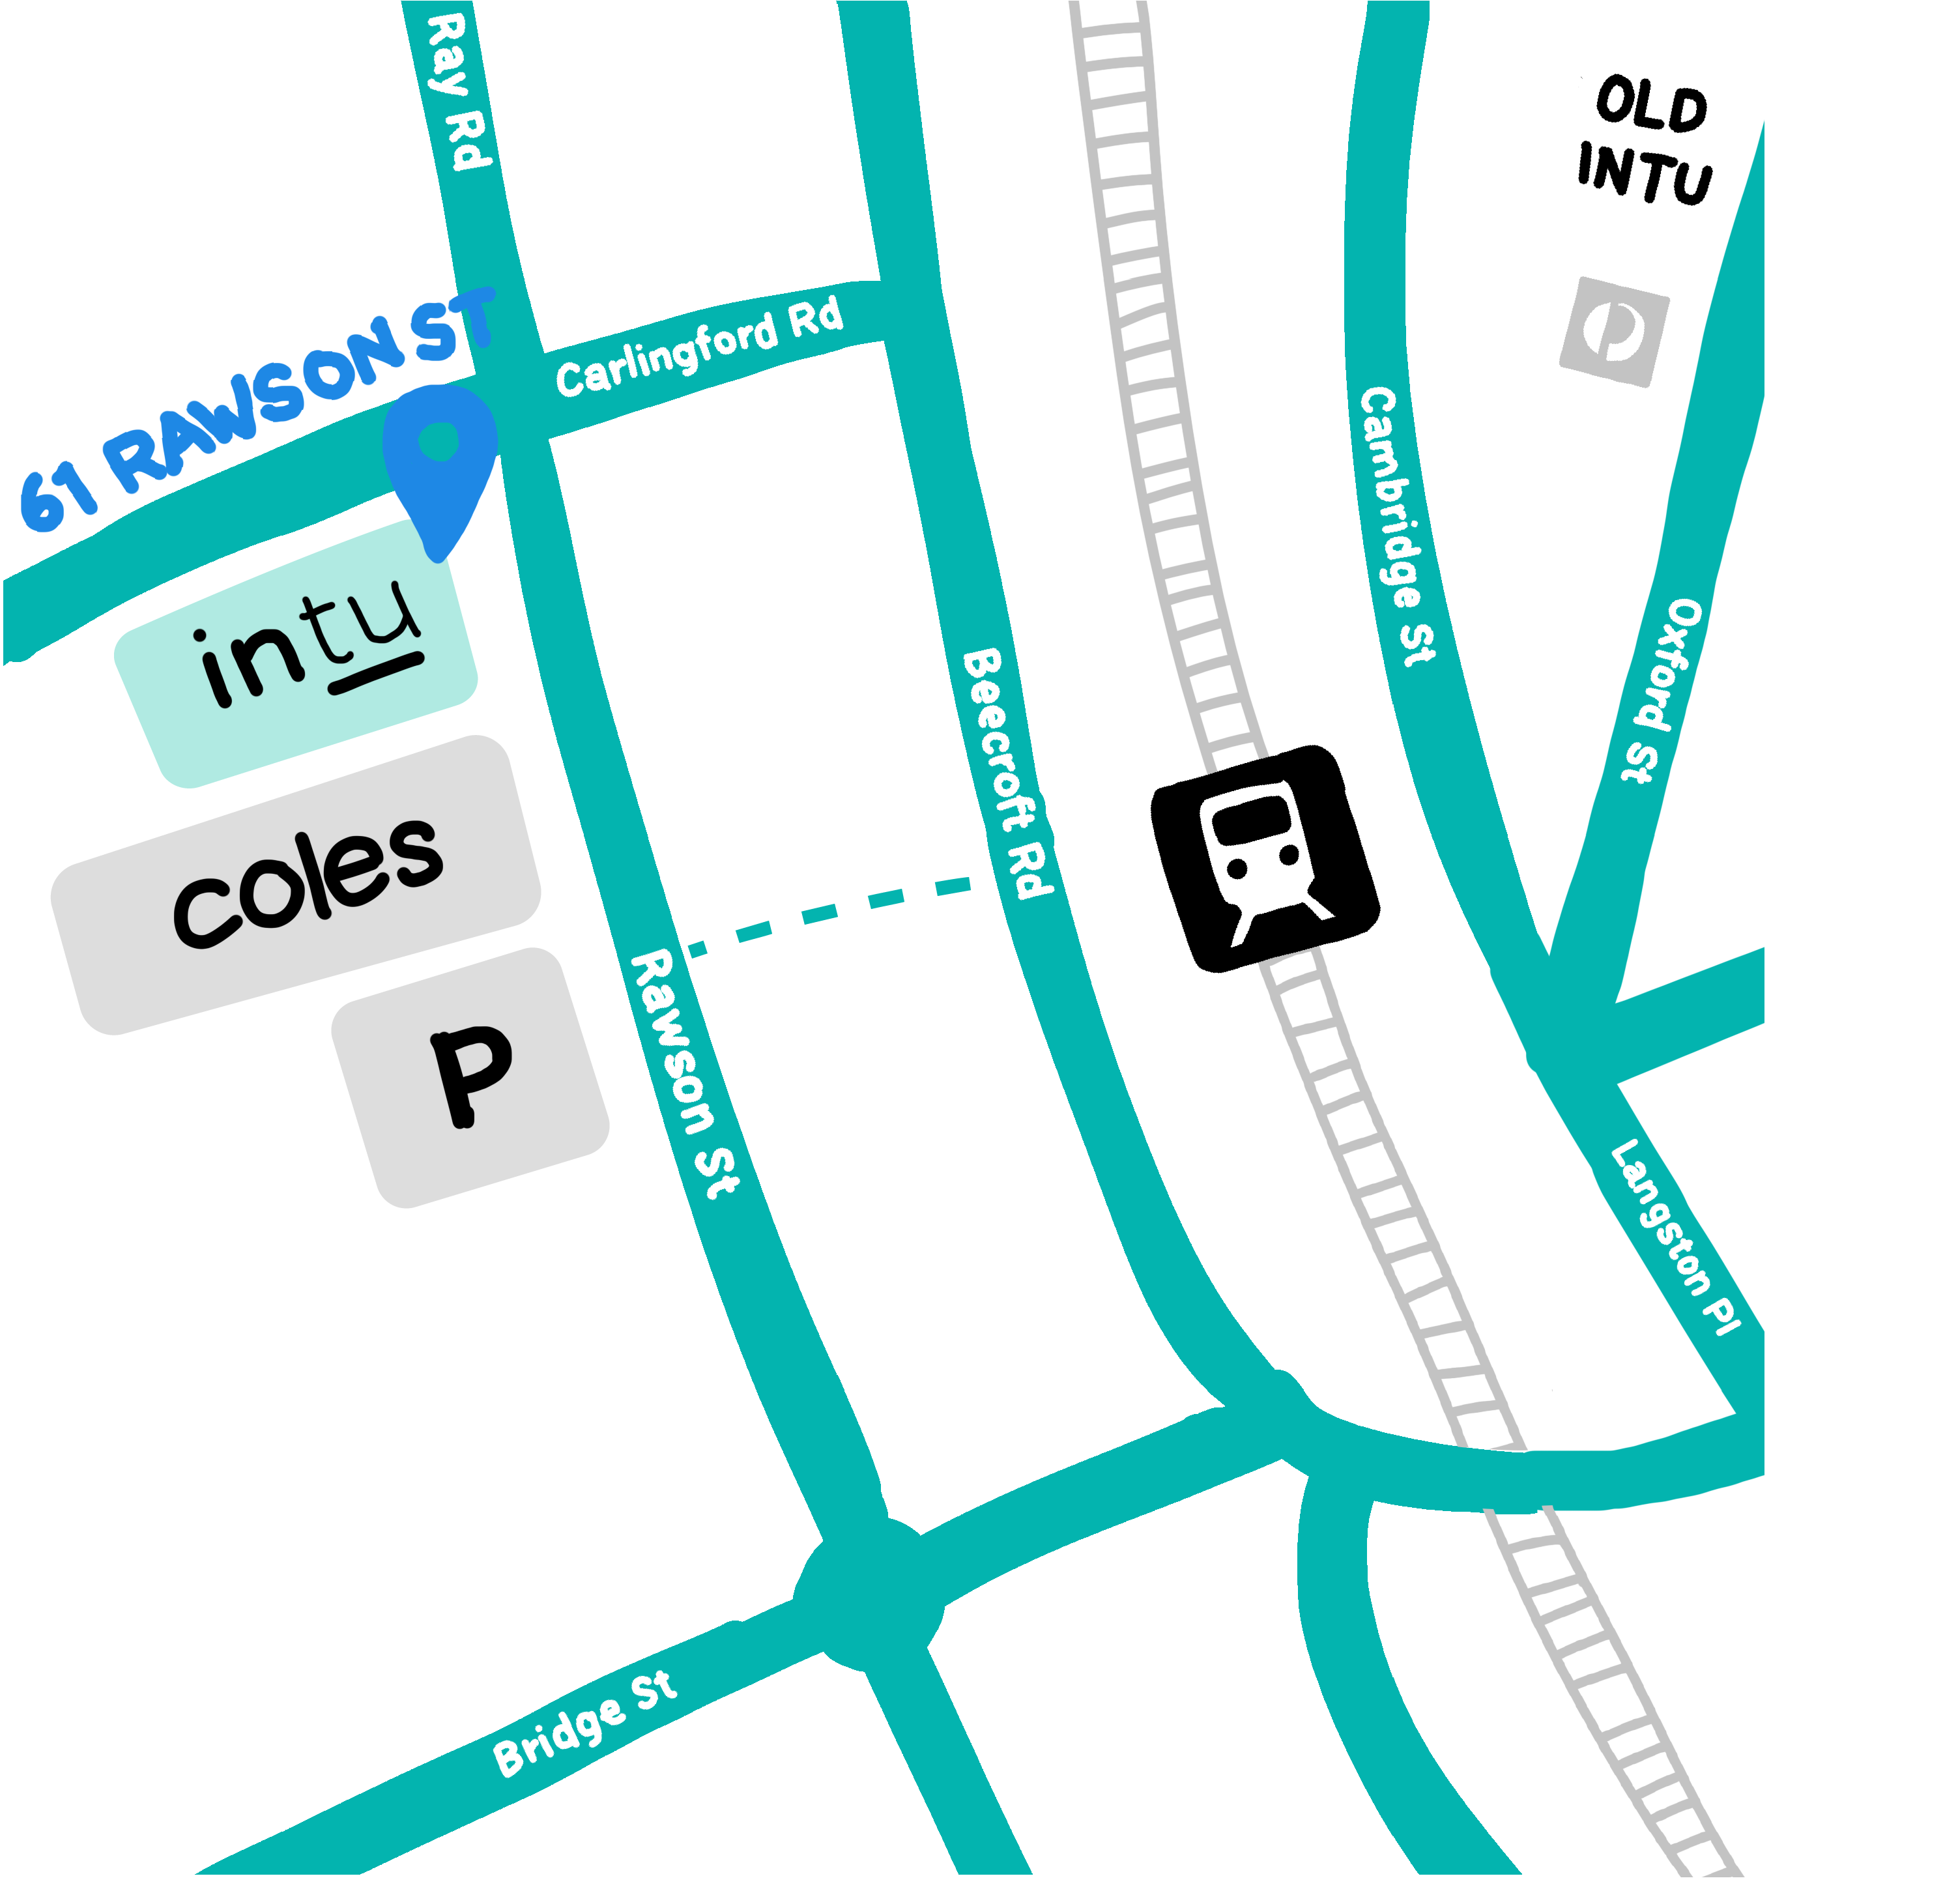 Map to the new Intu building